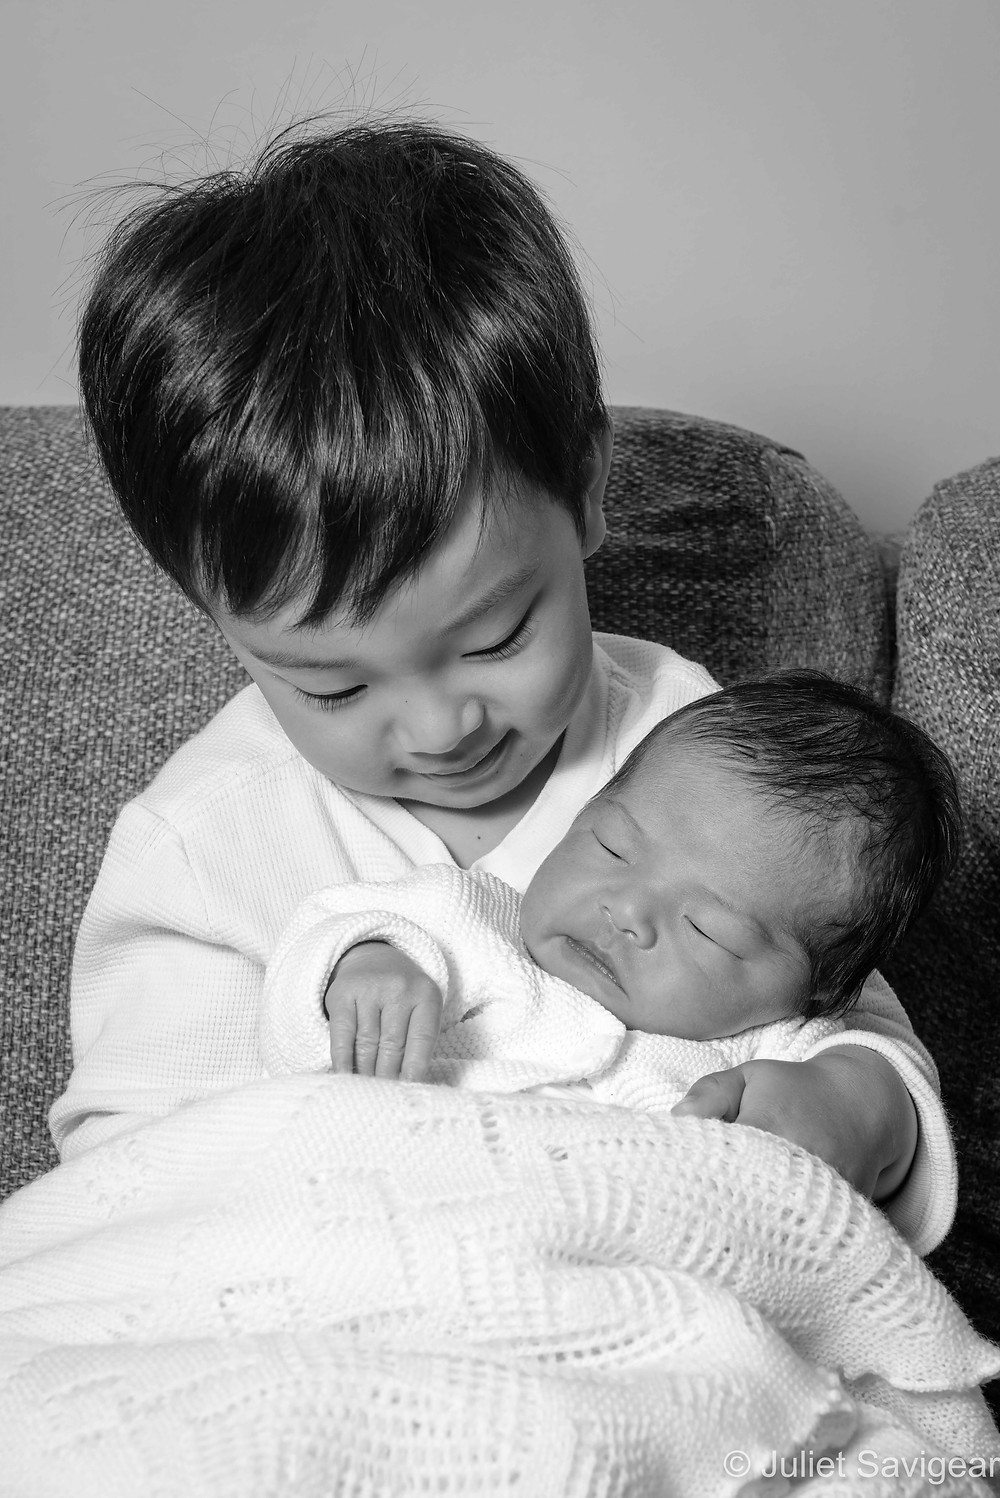 Baby sister in brother's arms